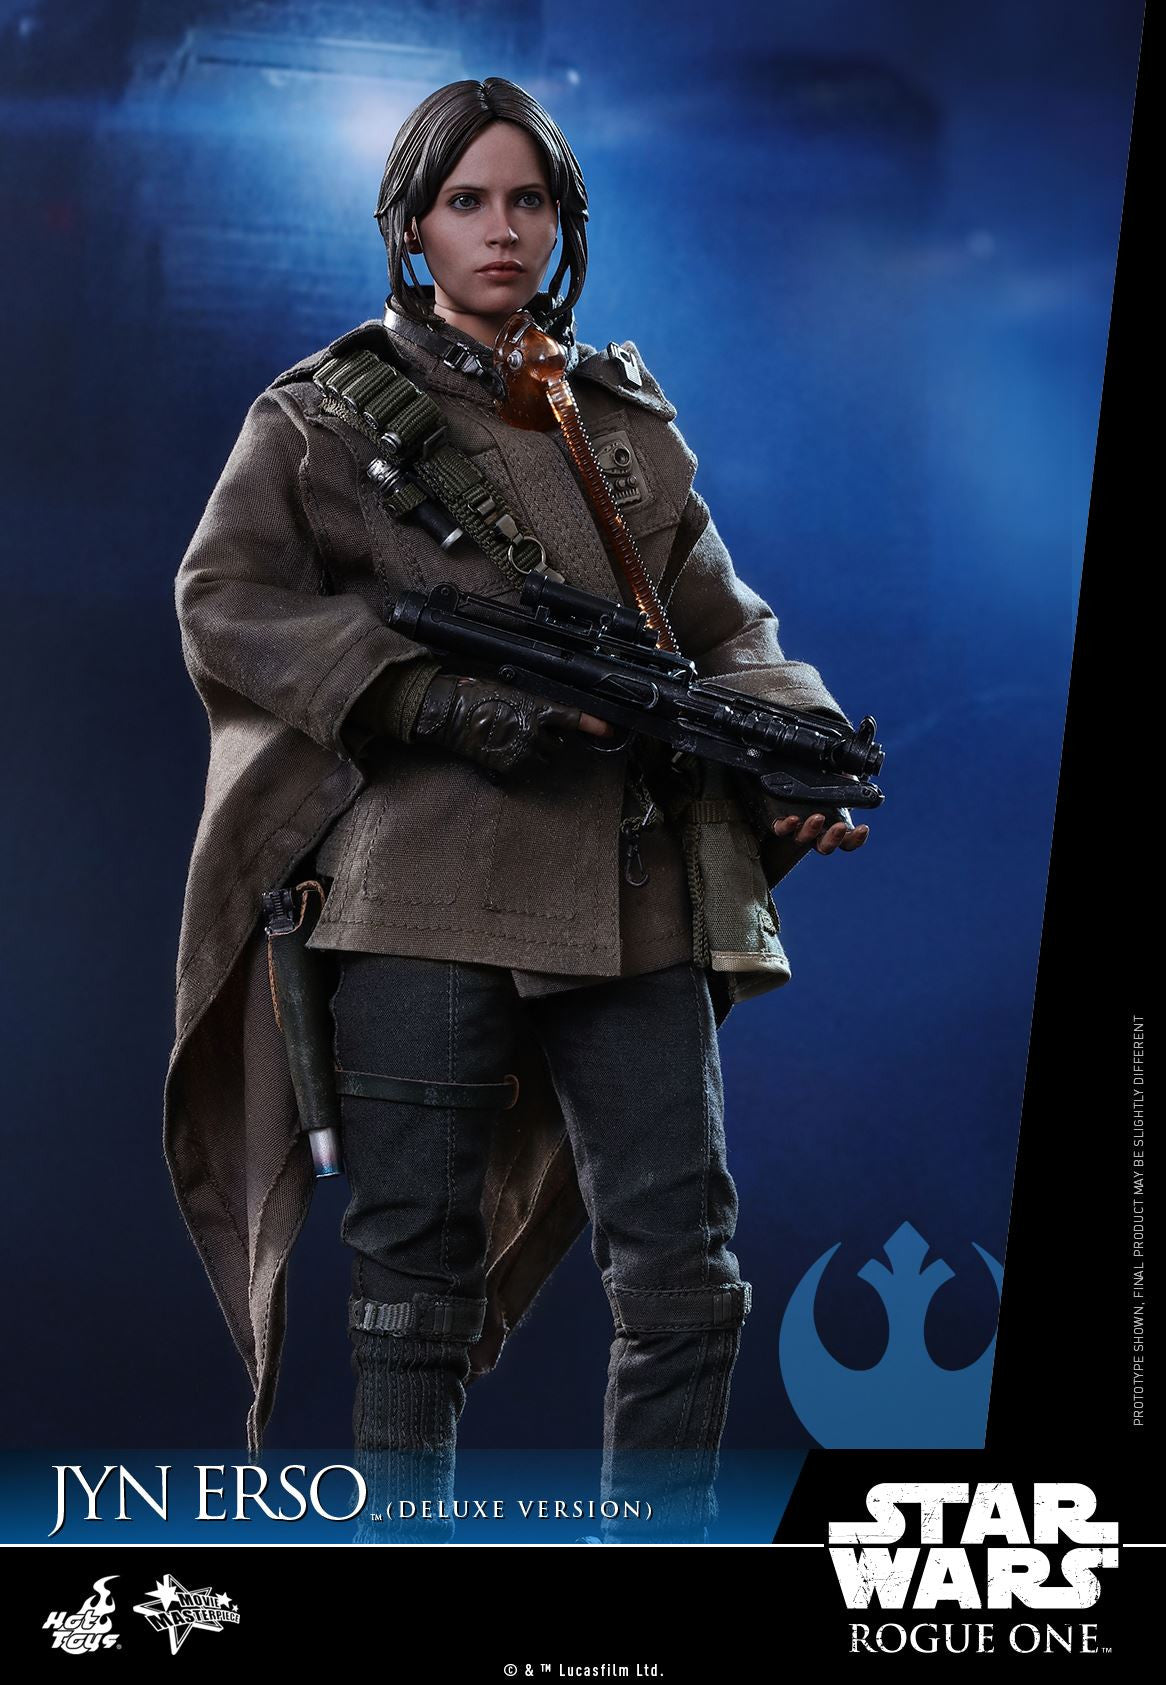 Hot Toys - MMS405 - Rogue One - A Star Wars Story - Jyn Erso (Deluxe Version) - Marvelous Toys - 6